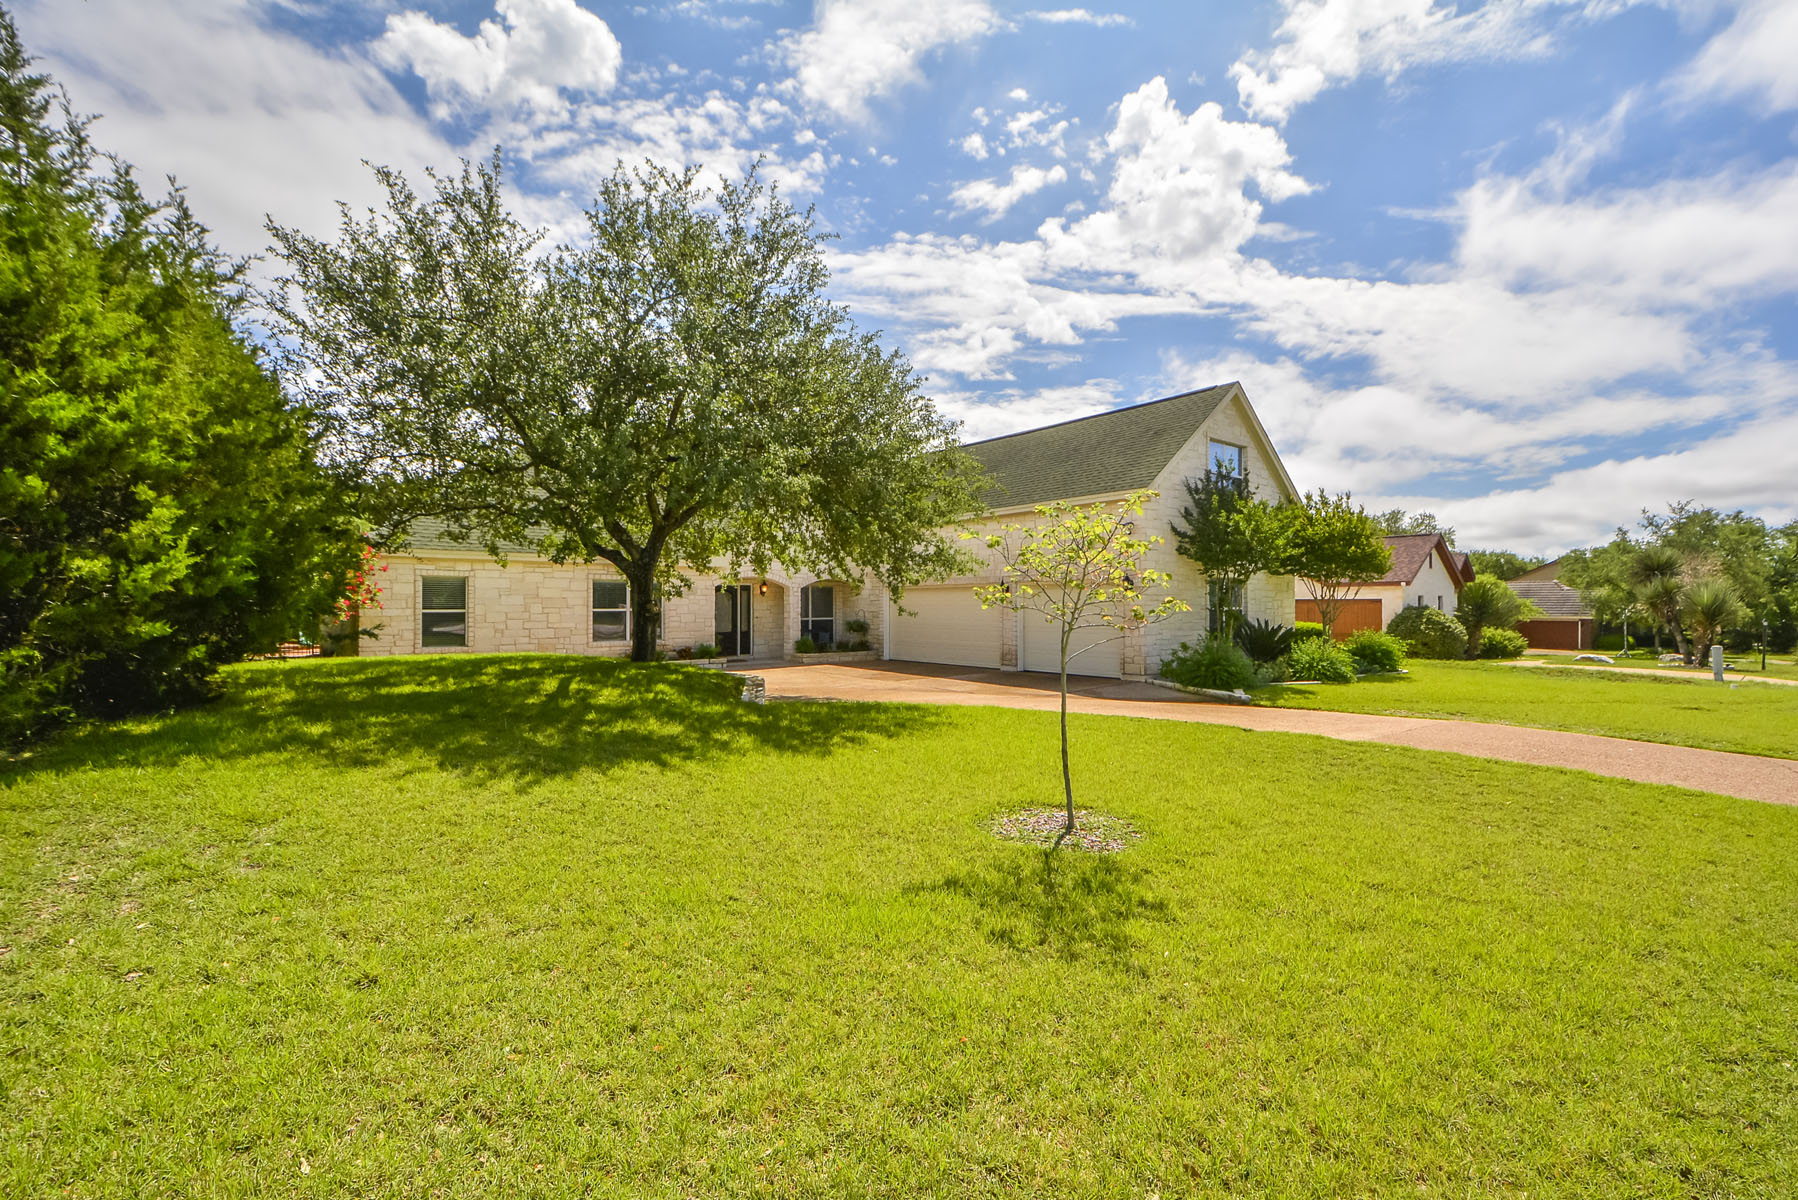 Single Family Home for Sale at Family Living in the Heart of Lakeway 205 El Rio Dr Lakeway, Texas, 78734 United States